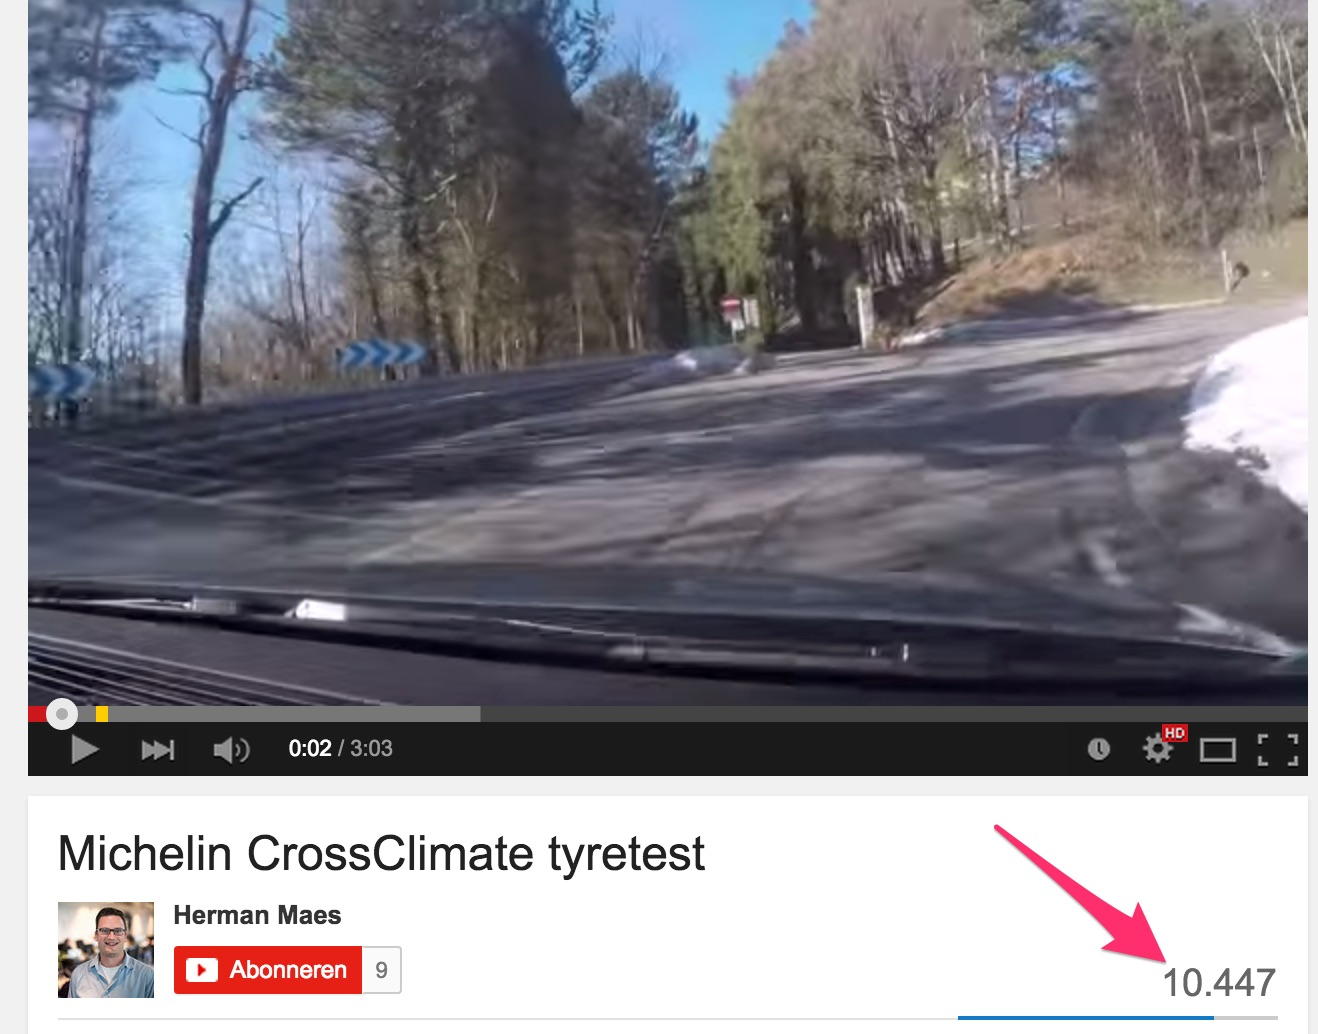 Michelin_CrossClimate_tyretest_-_YouTube